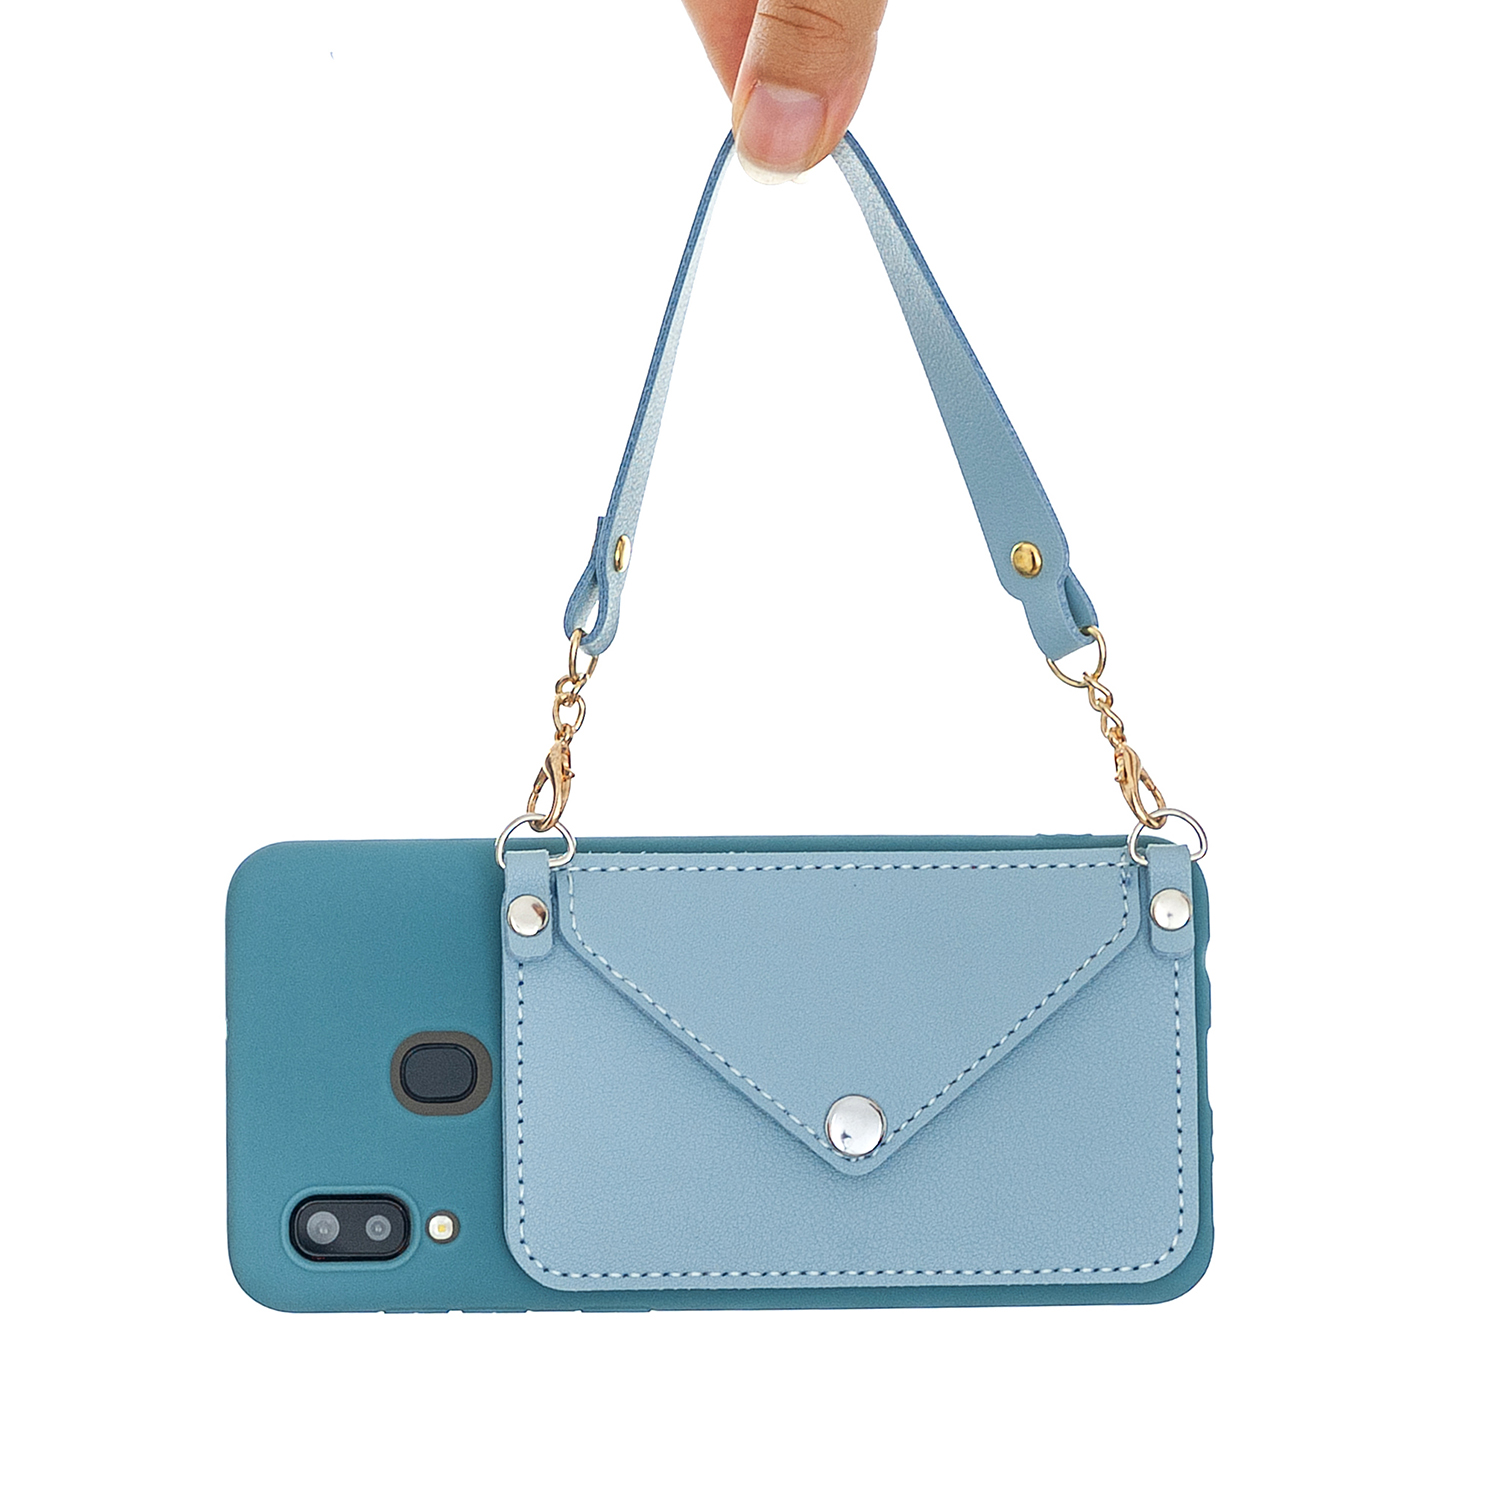 For HUAWEI P20/ P20 Lite/P20 Pro Mobile Phone Cover with Pu Leather Card Holder + Hand Rope + Straddle Rope blue